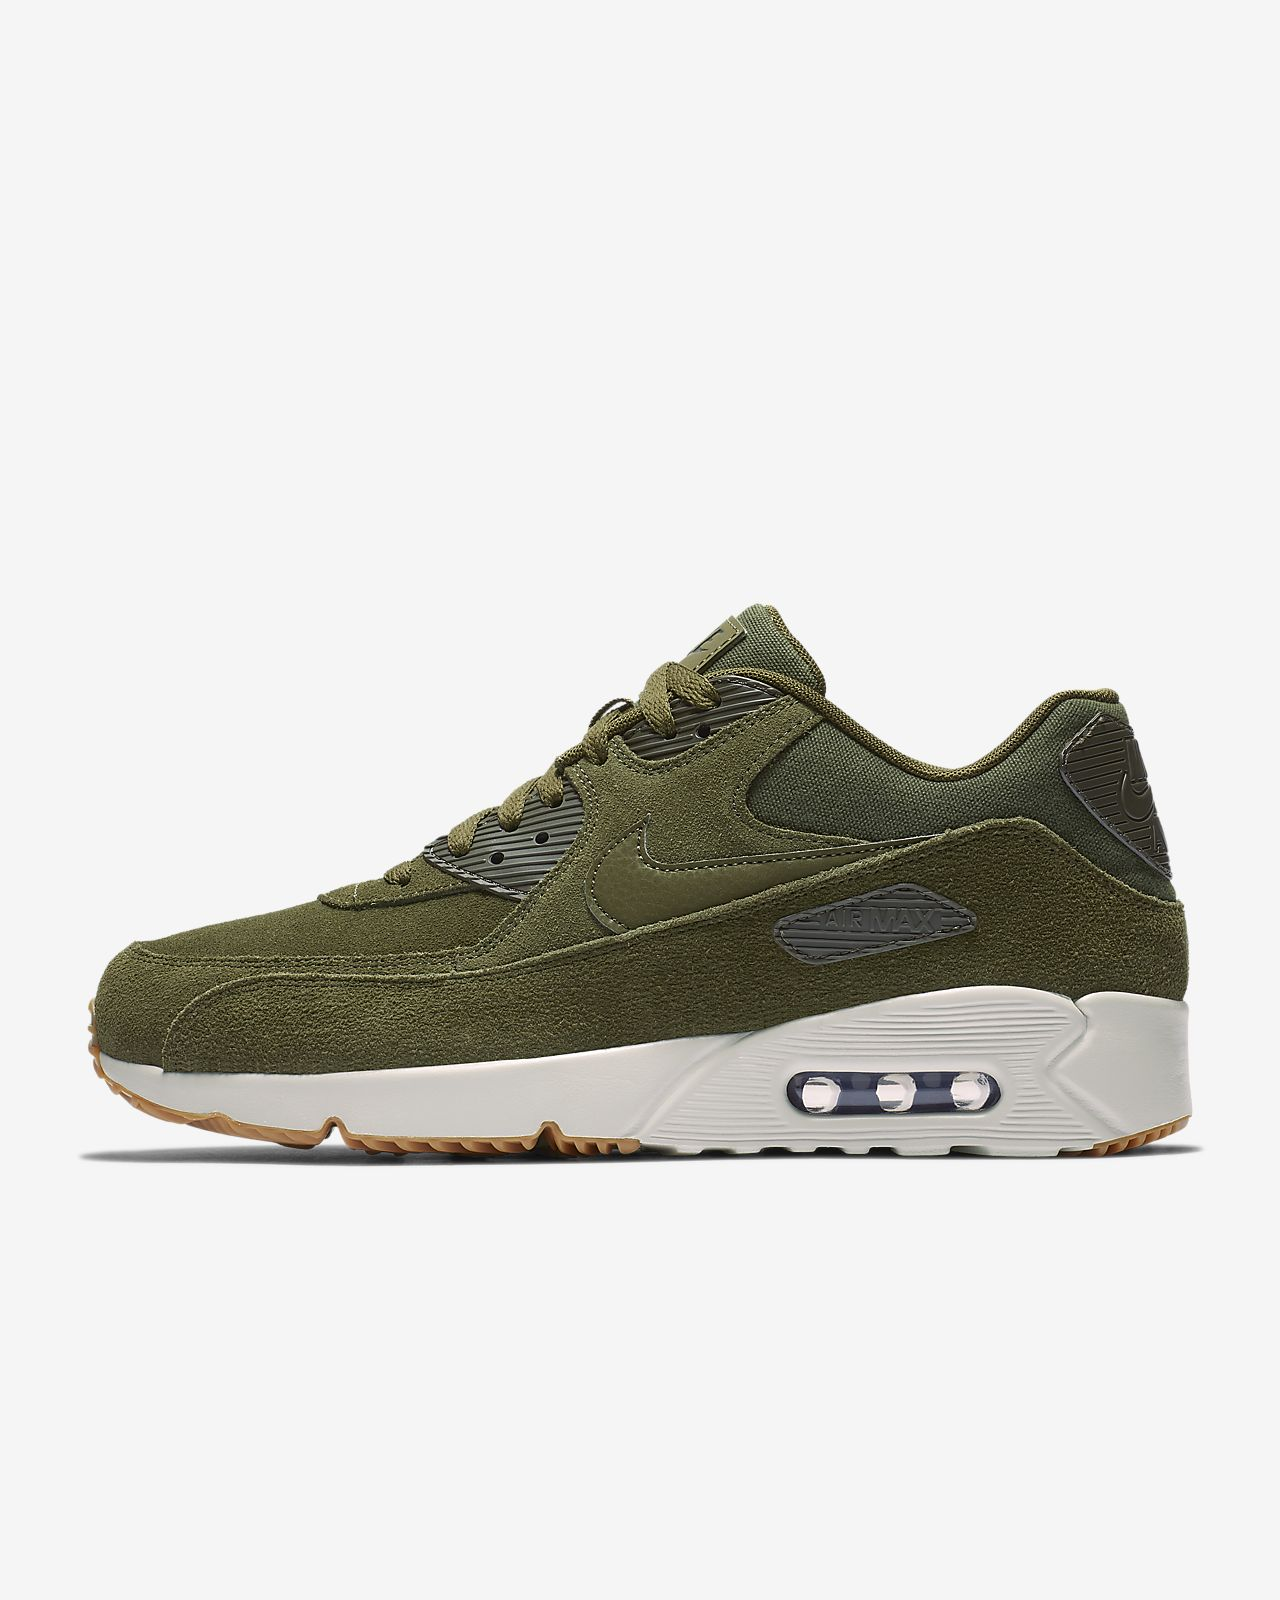 a769f984caf Nike Air Max 90 Ultra 2.0 Men s Shoe. Nike.com